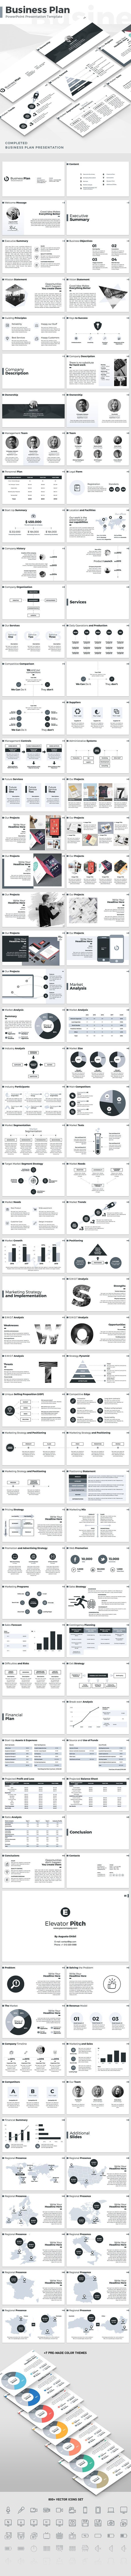 50 best INFOGRAFIK // POWERPOINT images on Pinterest | Info graphics ...